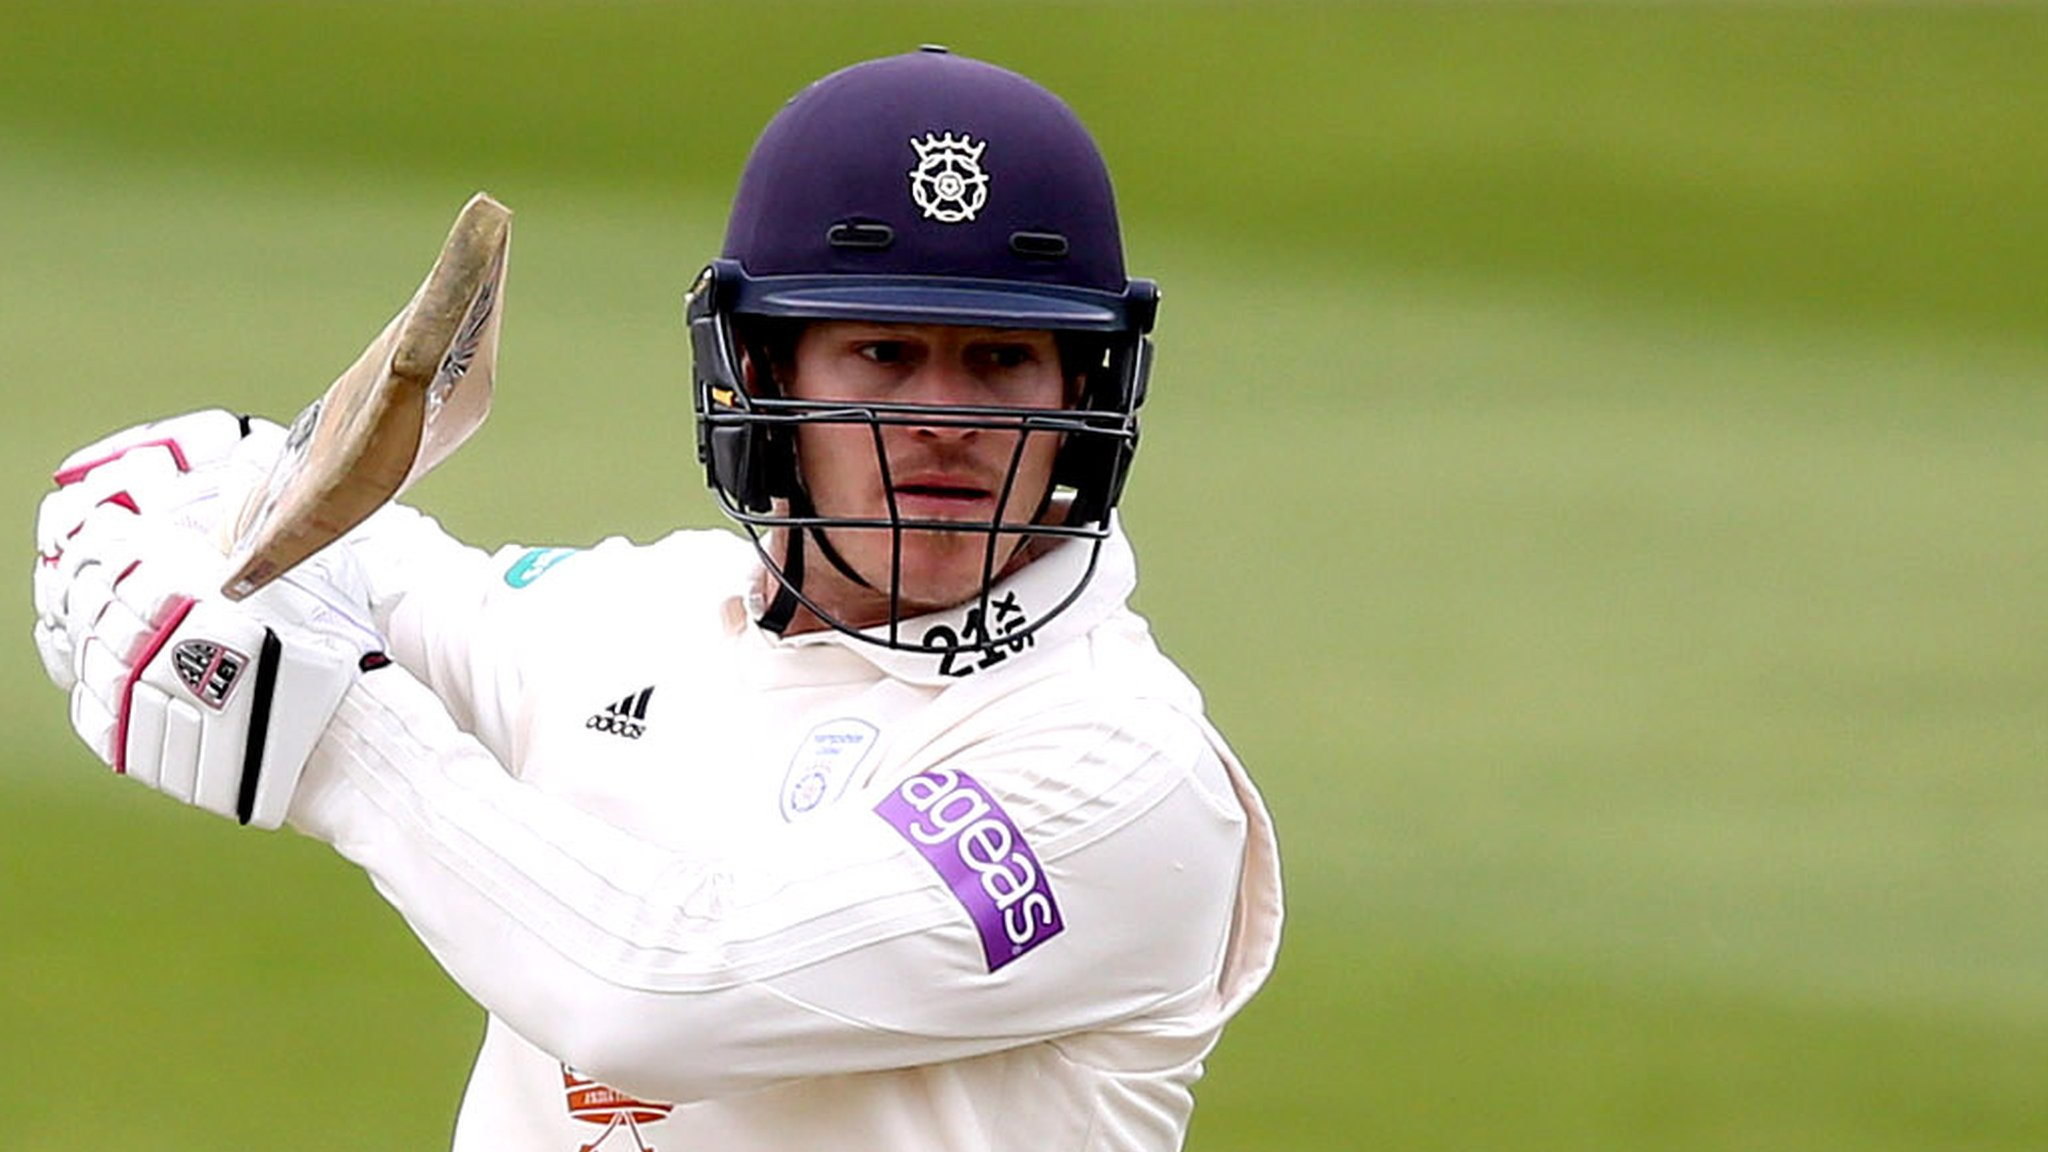 County Championship: Jimmy Adams scores century as Hampshire hit back against Yorkshire